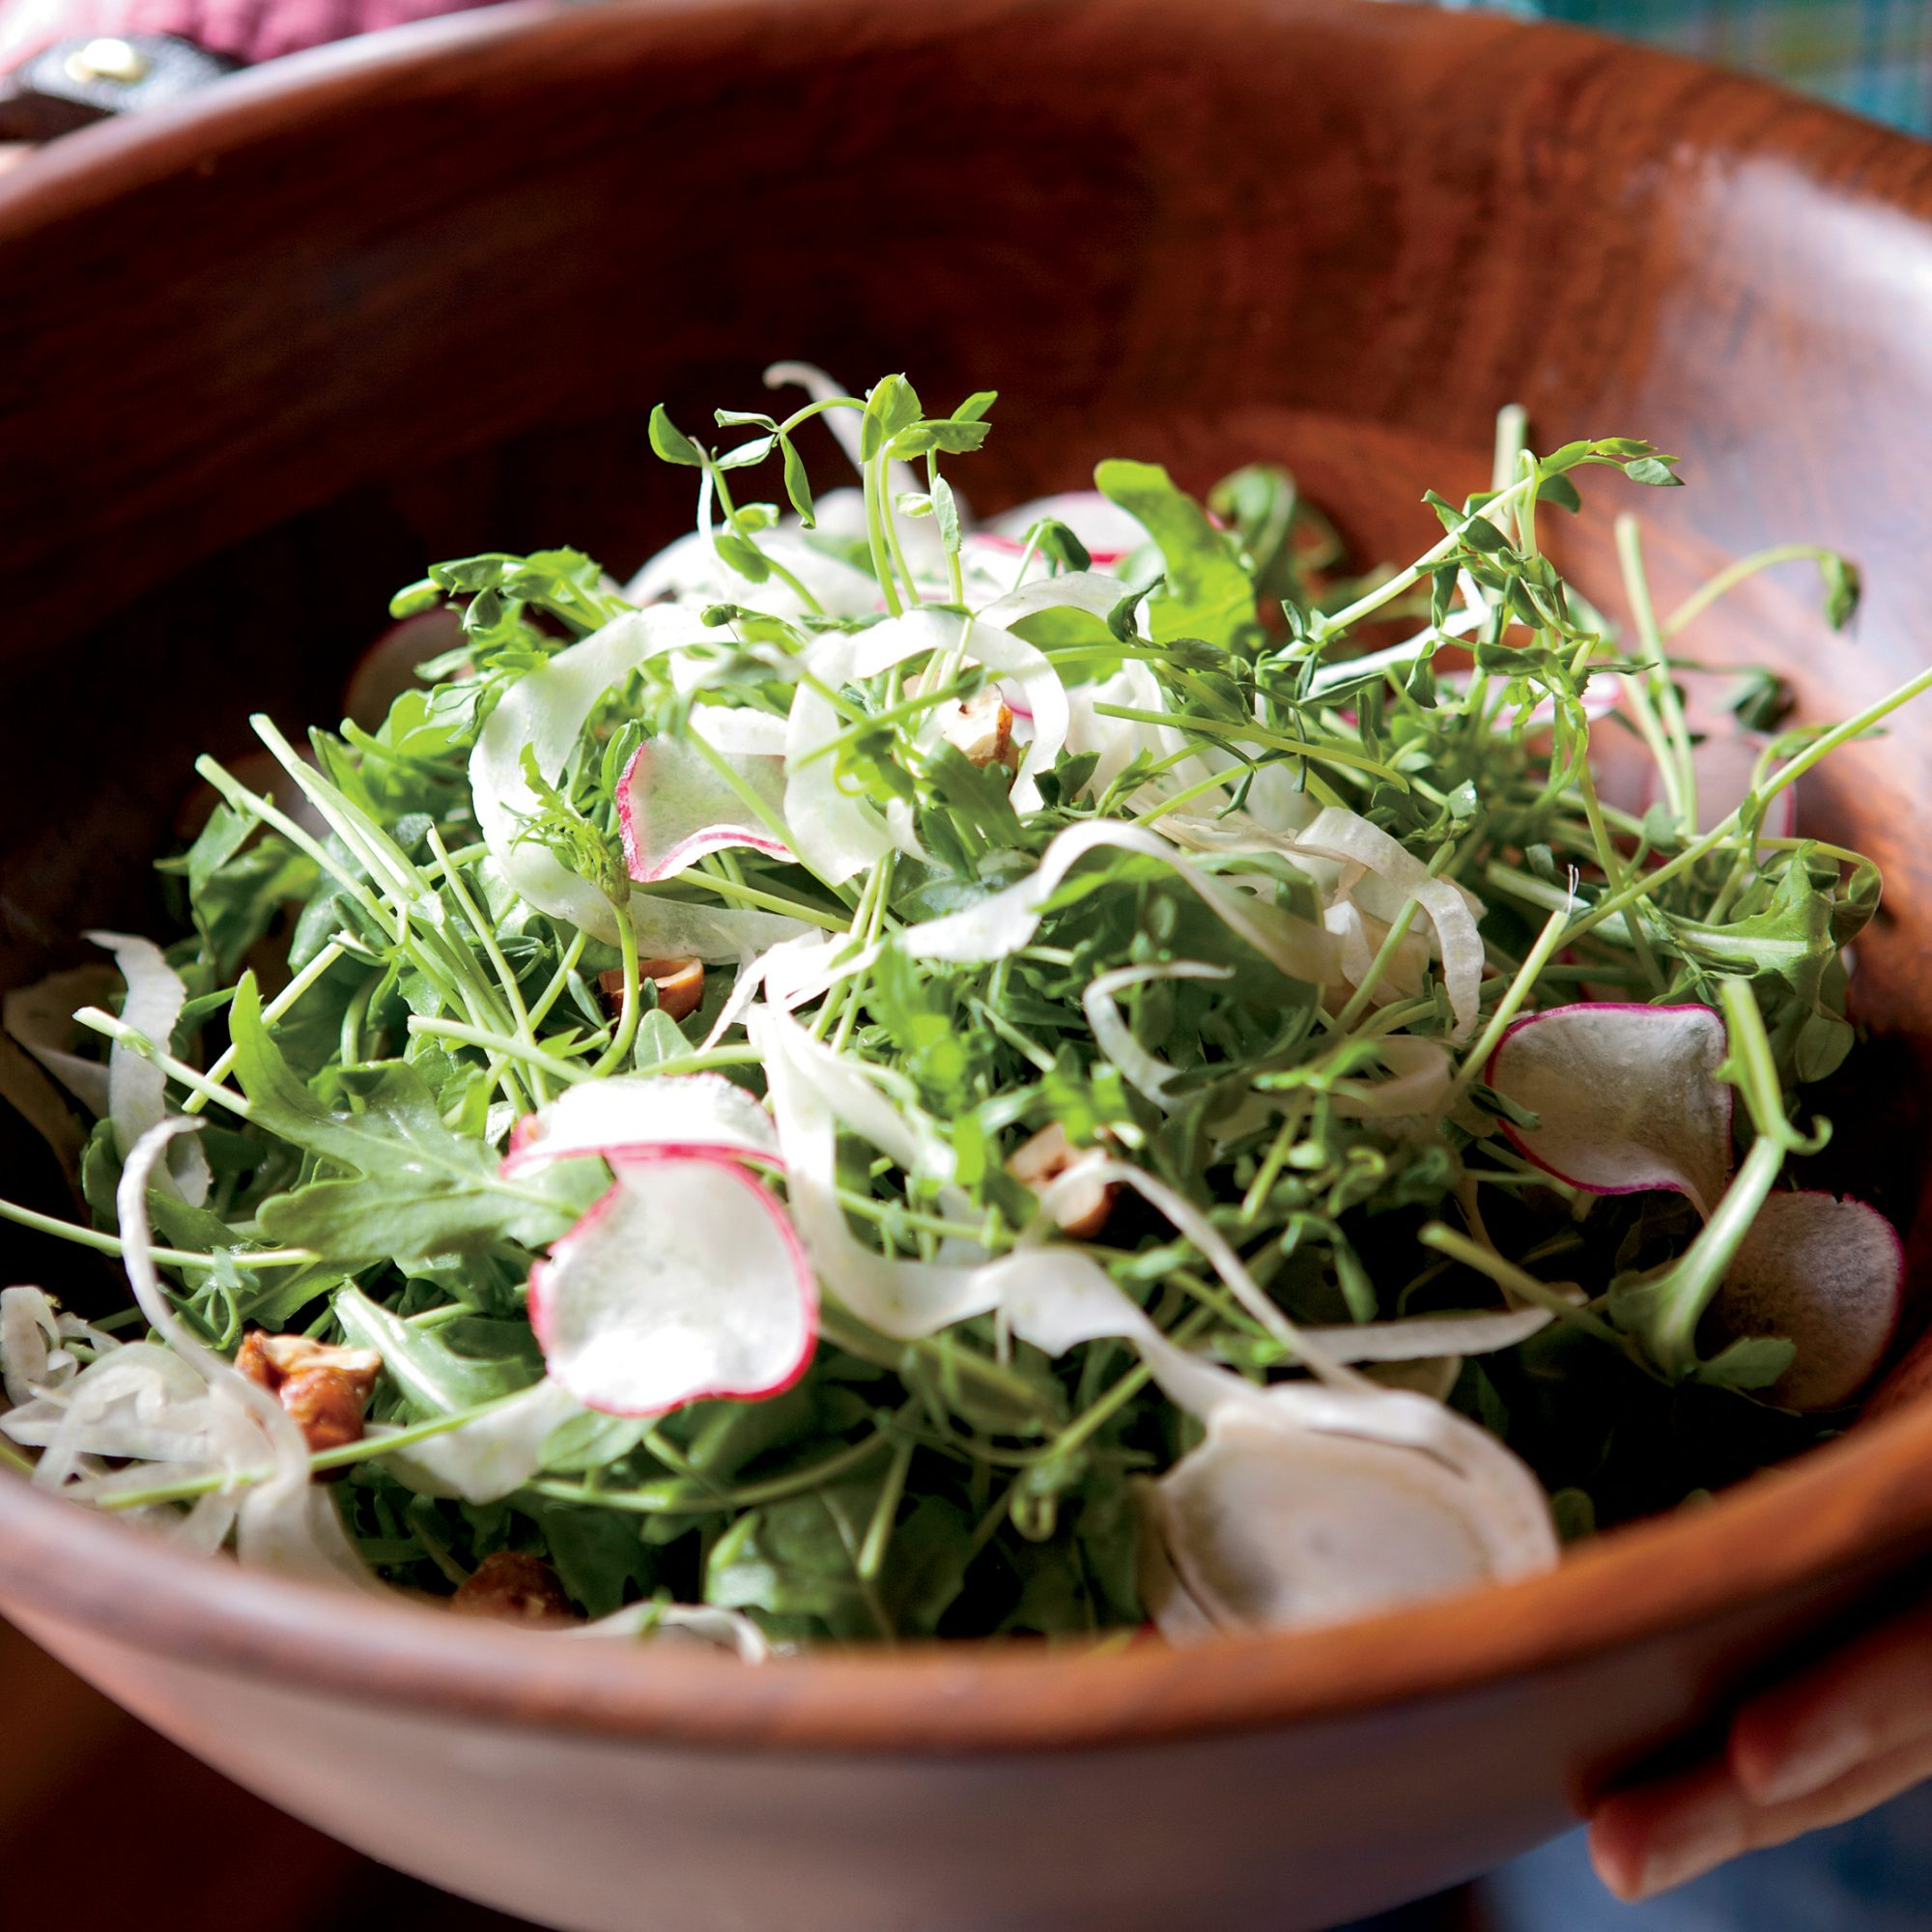 original-201208-r-pea-shoot-and-arugula-salad-with-radishes-and-hazelnuts.jpg